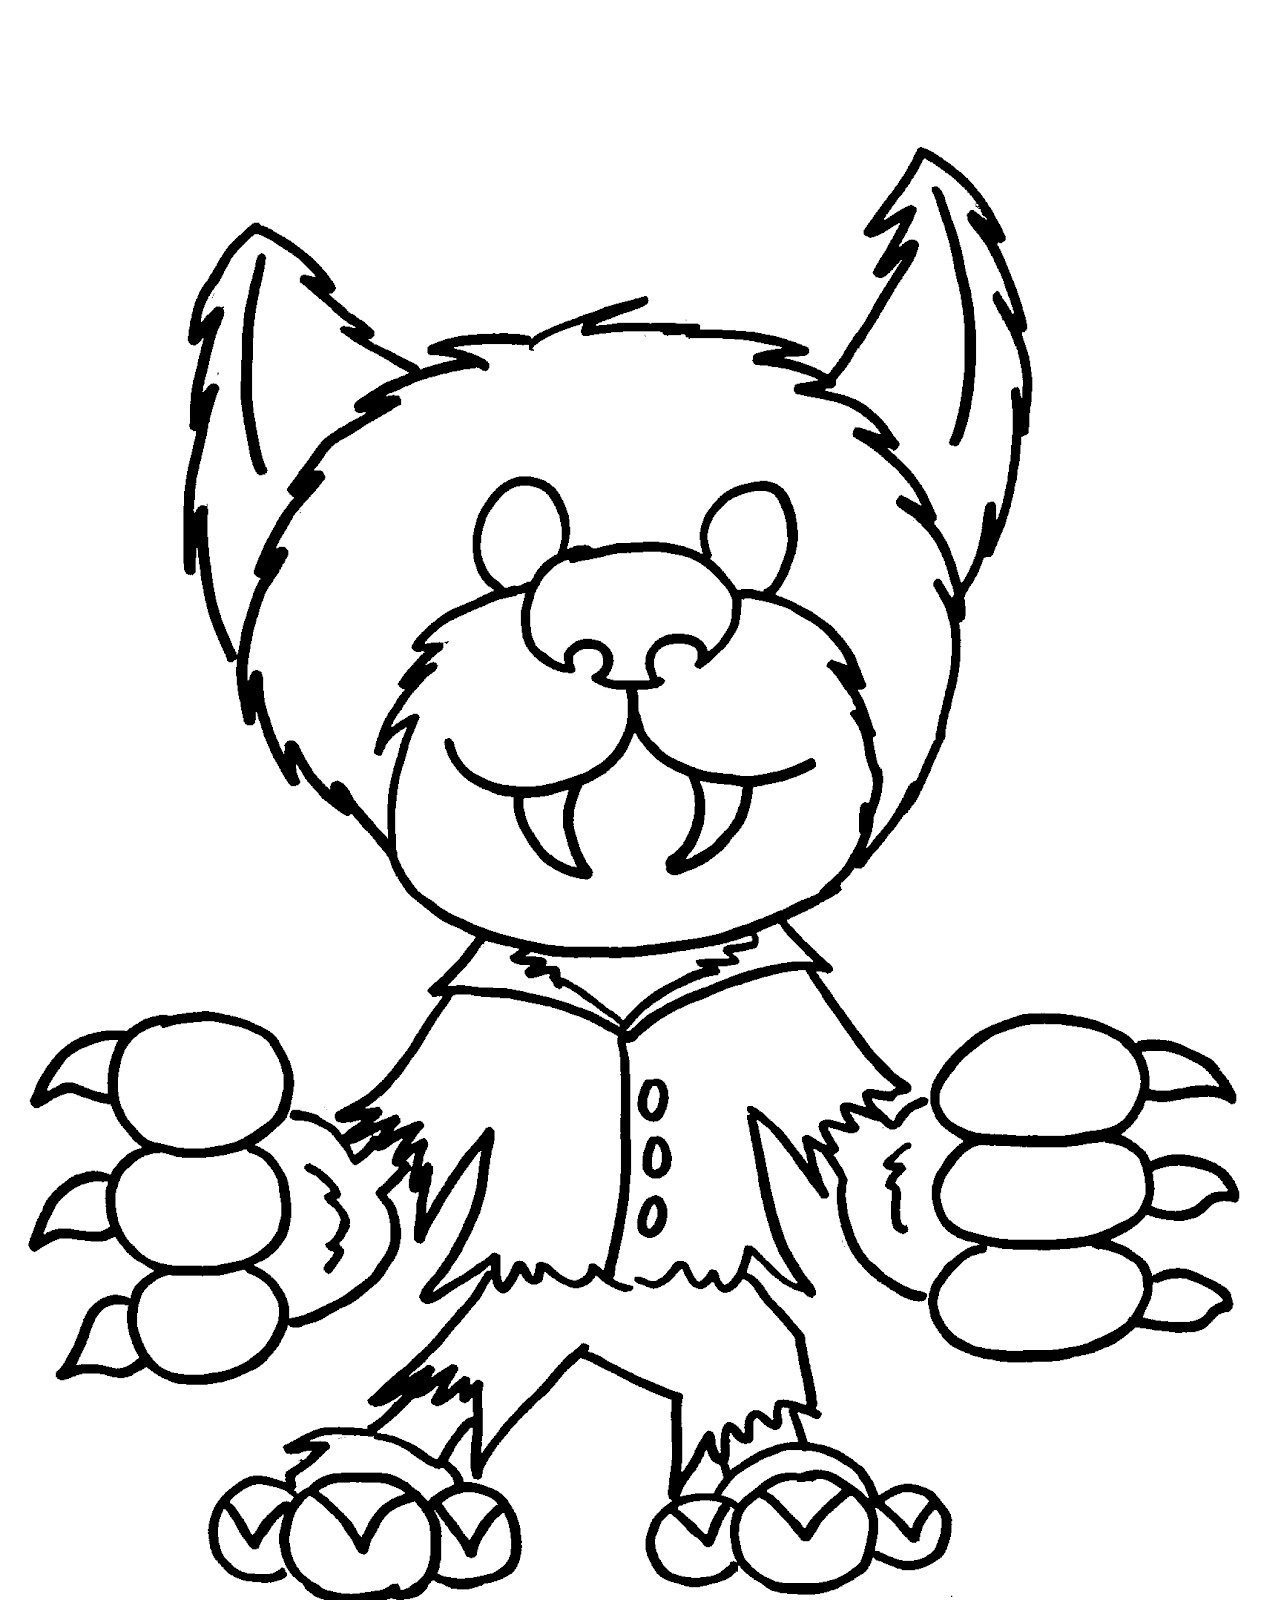 coloring pages halloween free halloween coloring pages for kids or for the kid in you pages coloring halloween